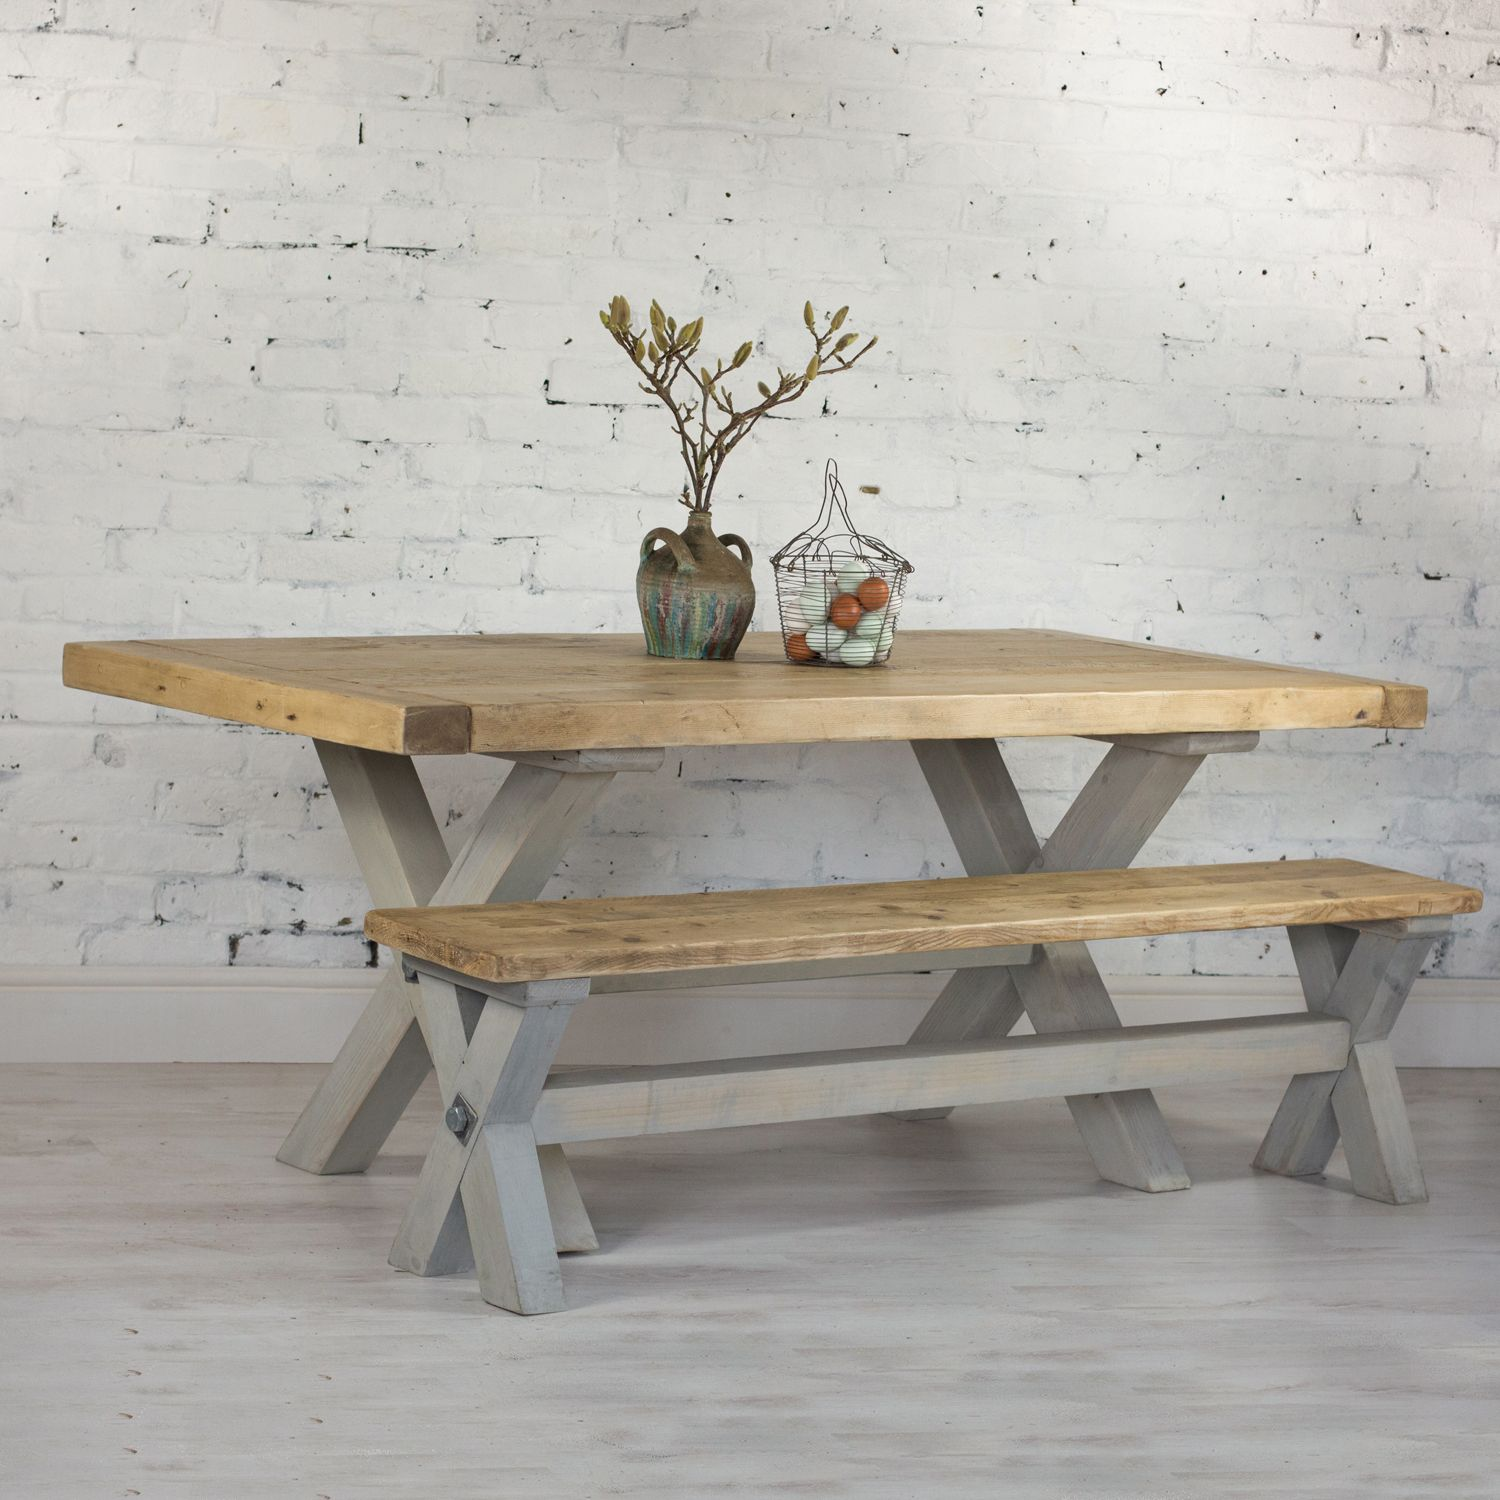 Buy This Amazing... Reclaimed Wood Refectory Dining Table. Beautiful Chunky  Reclaimed Pine Table With Breadboard Ends And Trestle Legs. Hand Made U2026